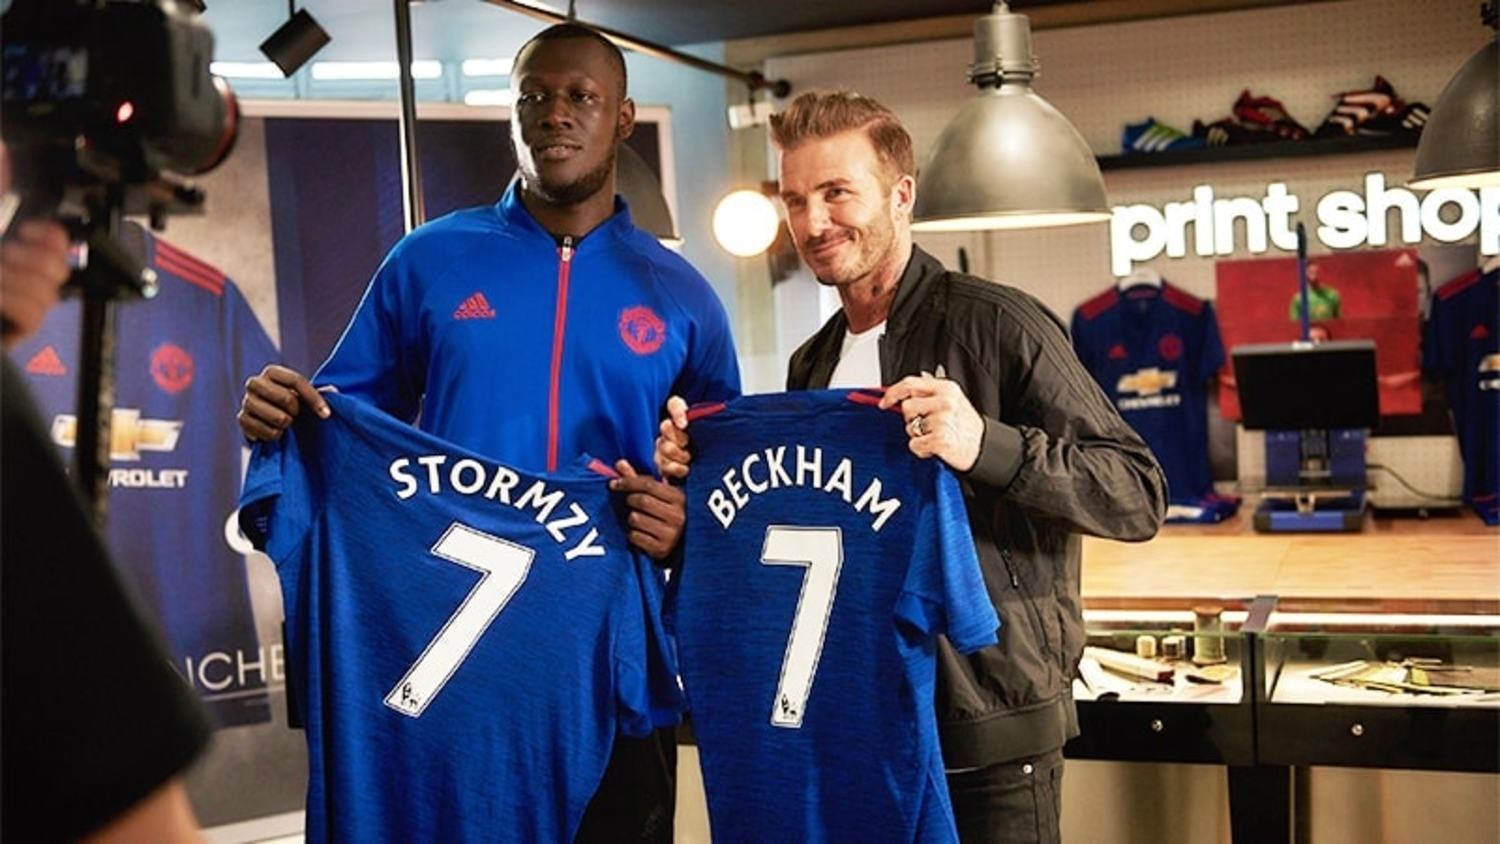 Stormzy Meets Idol David Beckham for Adidas Man United Kit Launch